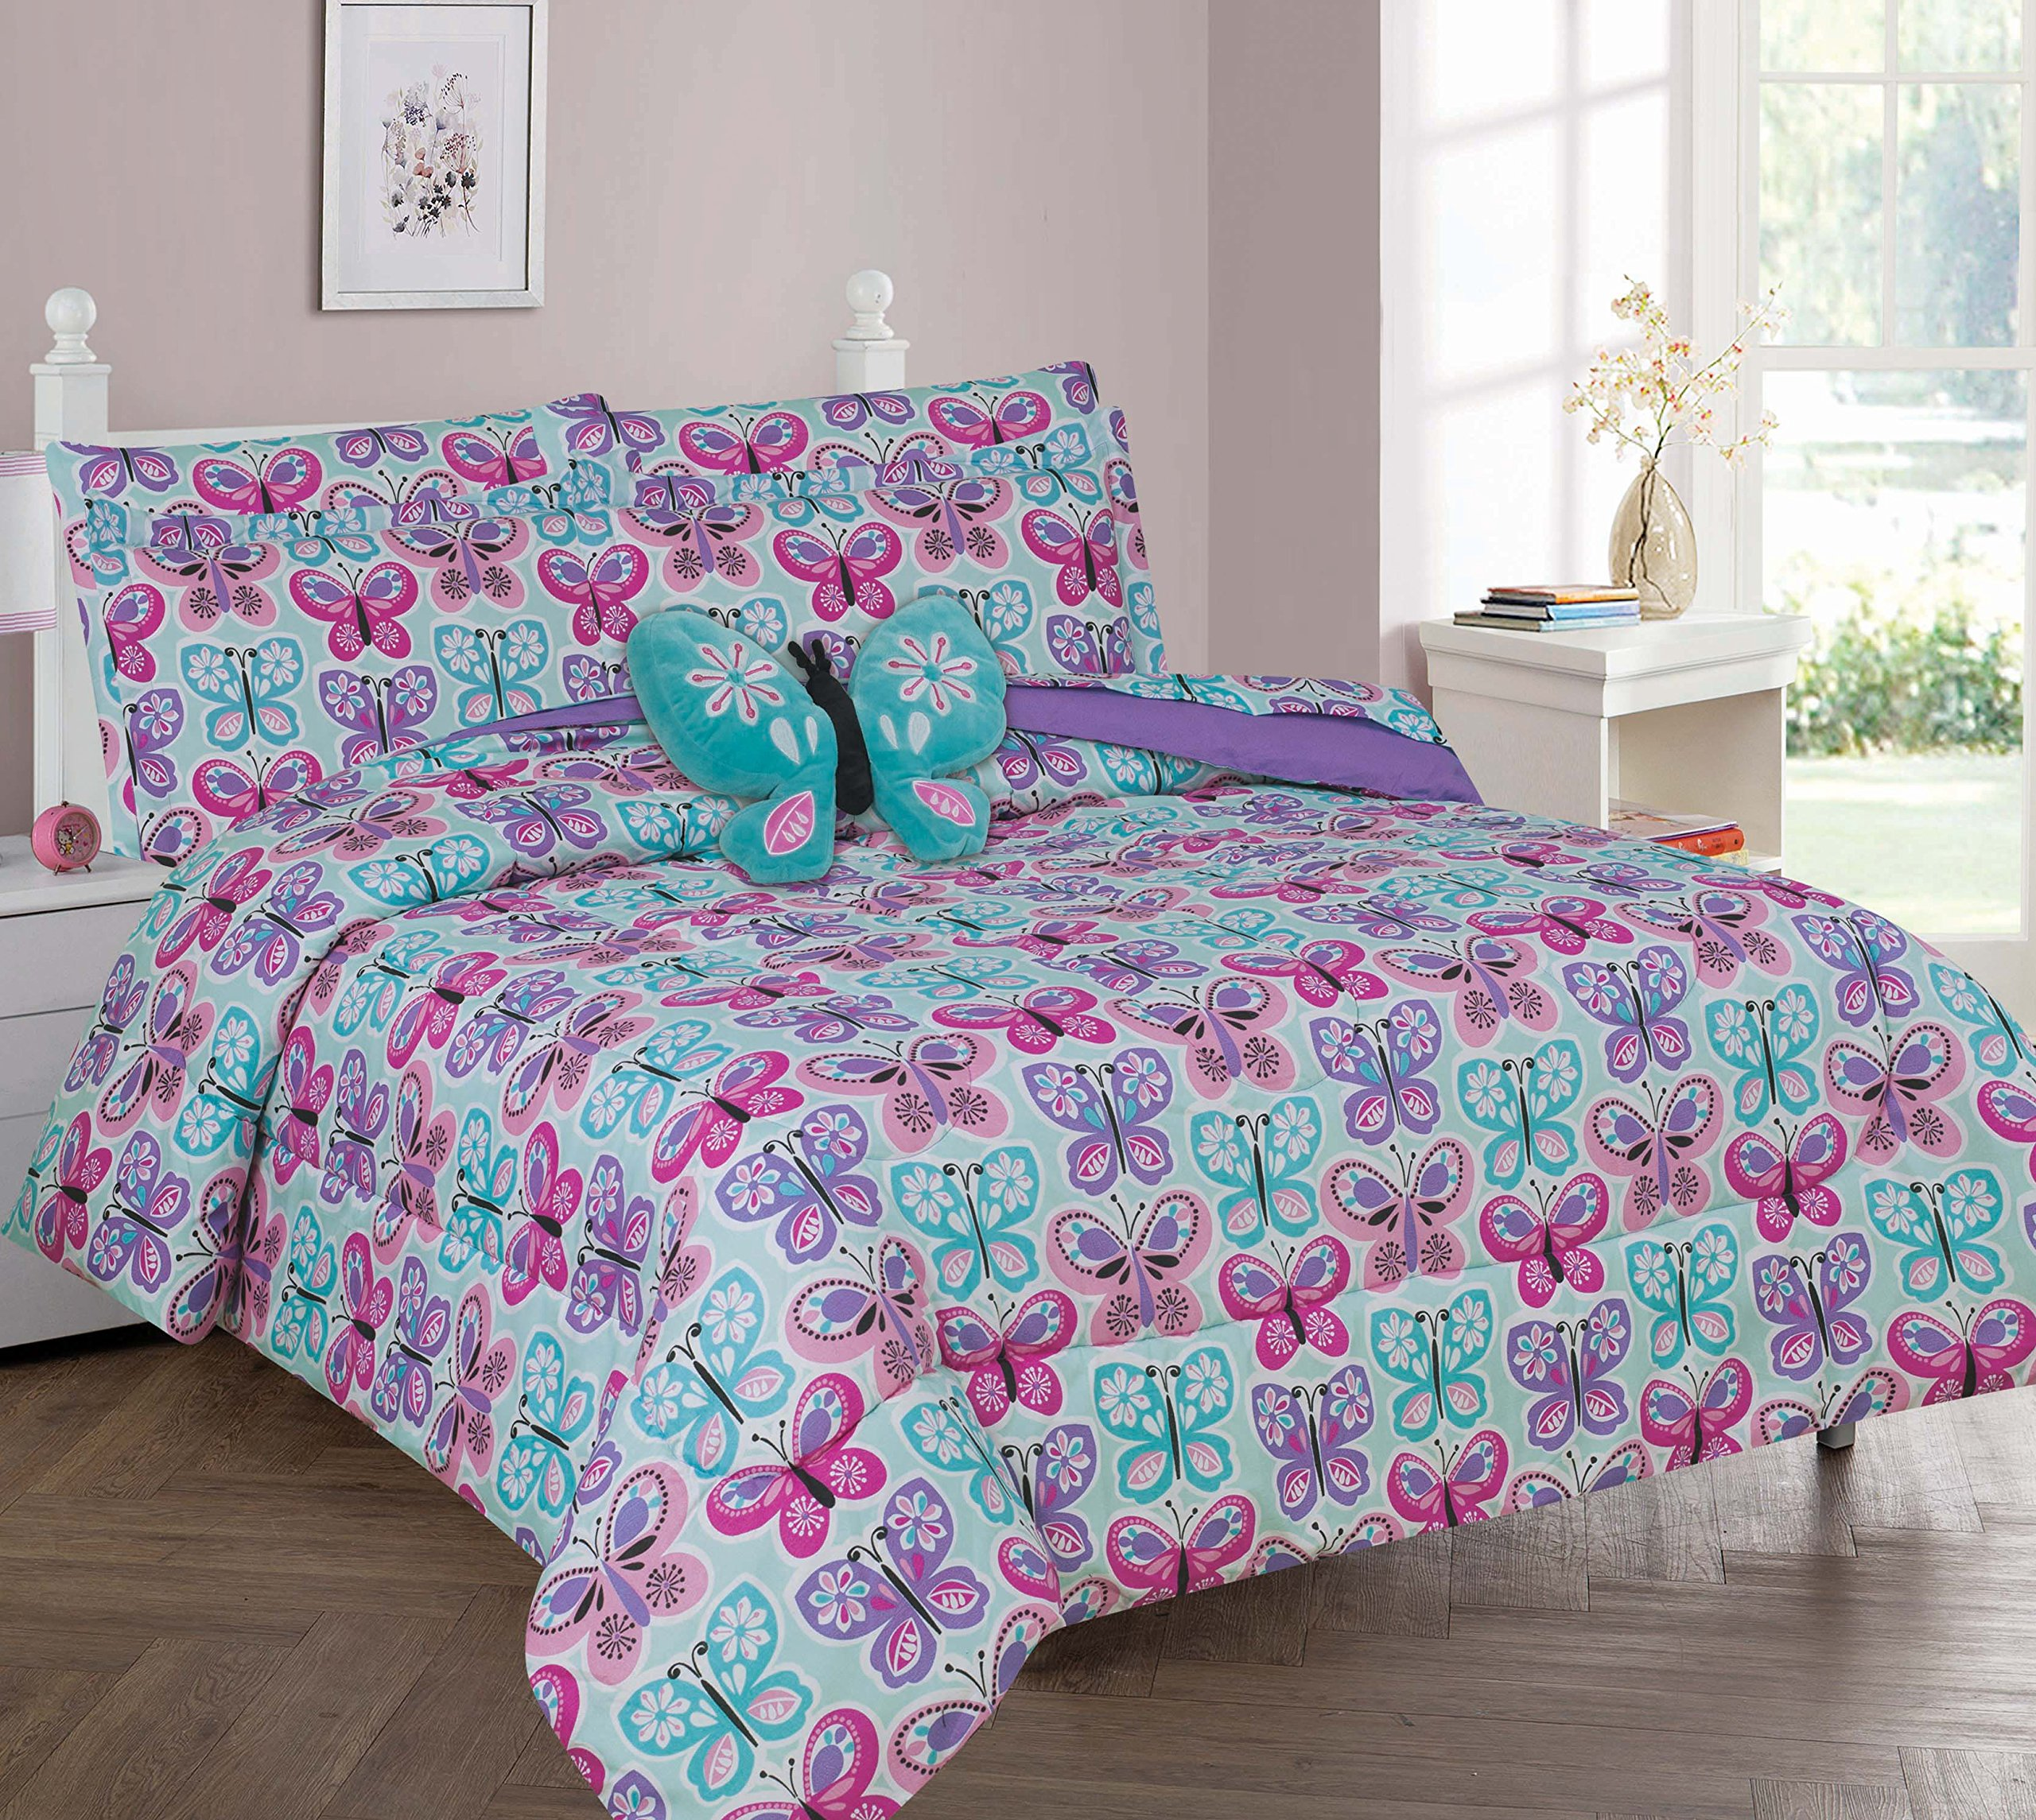 Twin & Full 6 Pcs or 8 Pcs Comforter/ Coverlet / Bed in Bag Set with Toy (Full, BUTTERFLY BLUE)